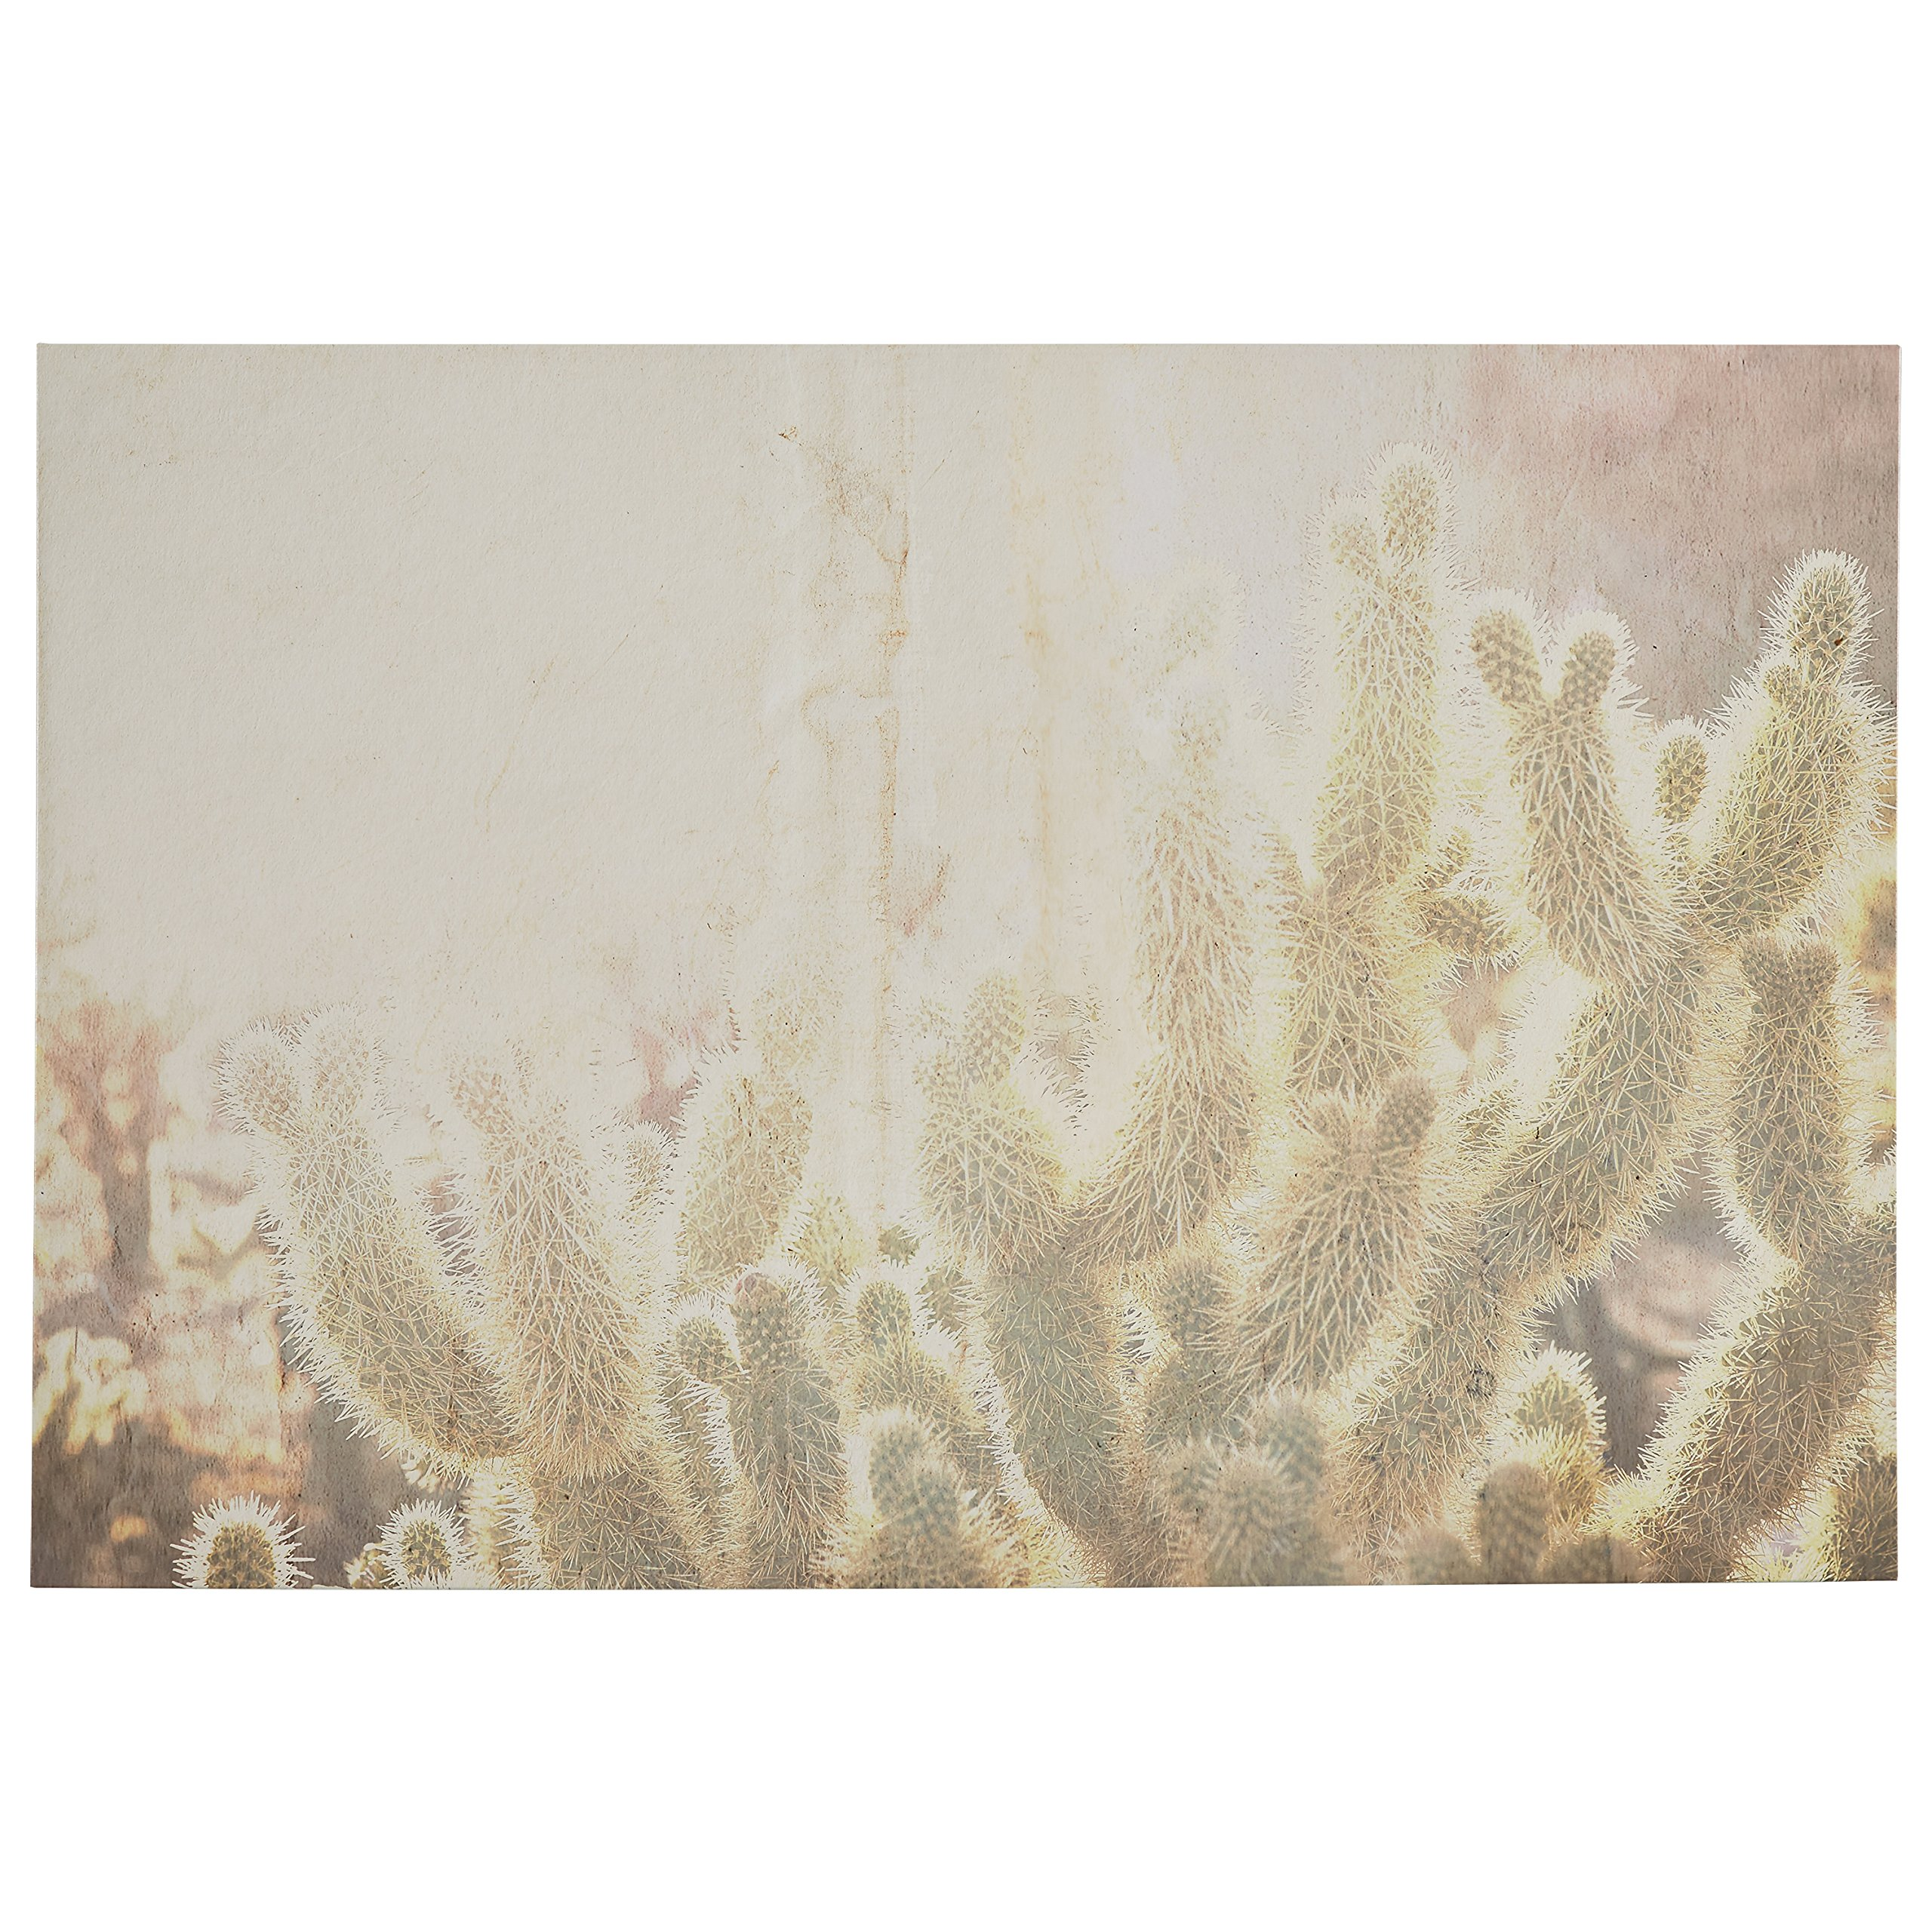 Sun Exposed Cactus Canvas Photo Print 60'' x 40'' by Rivet